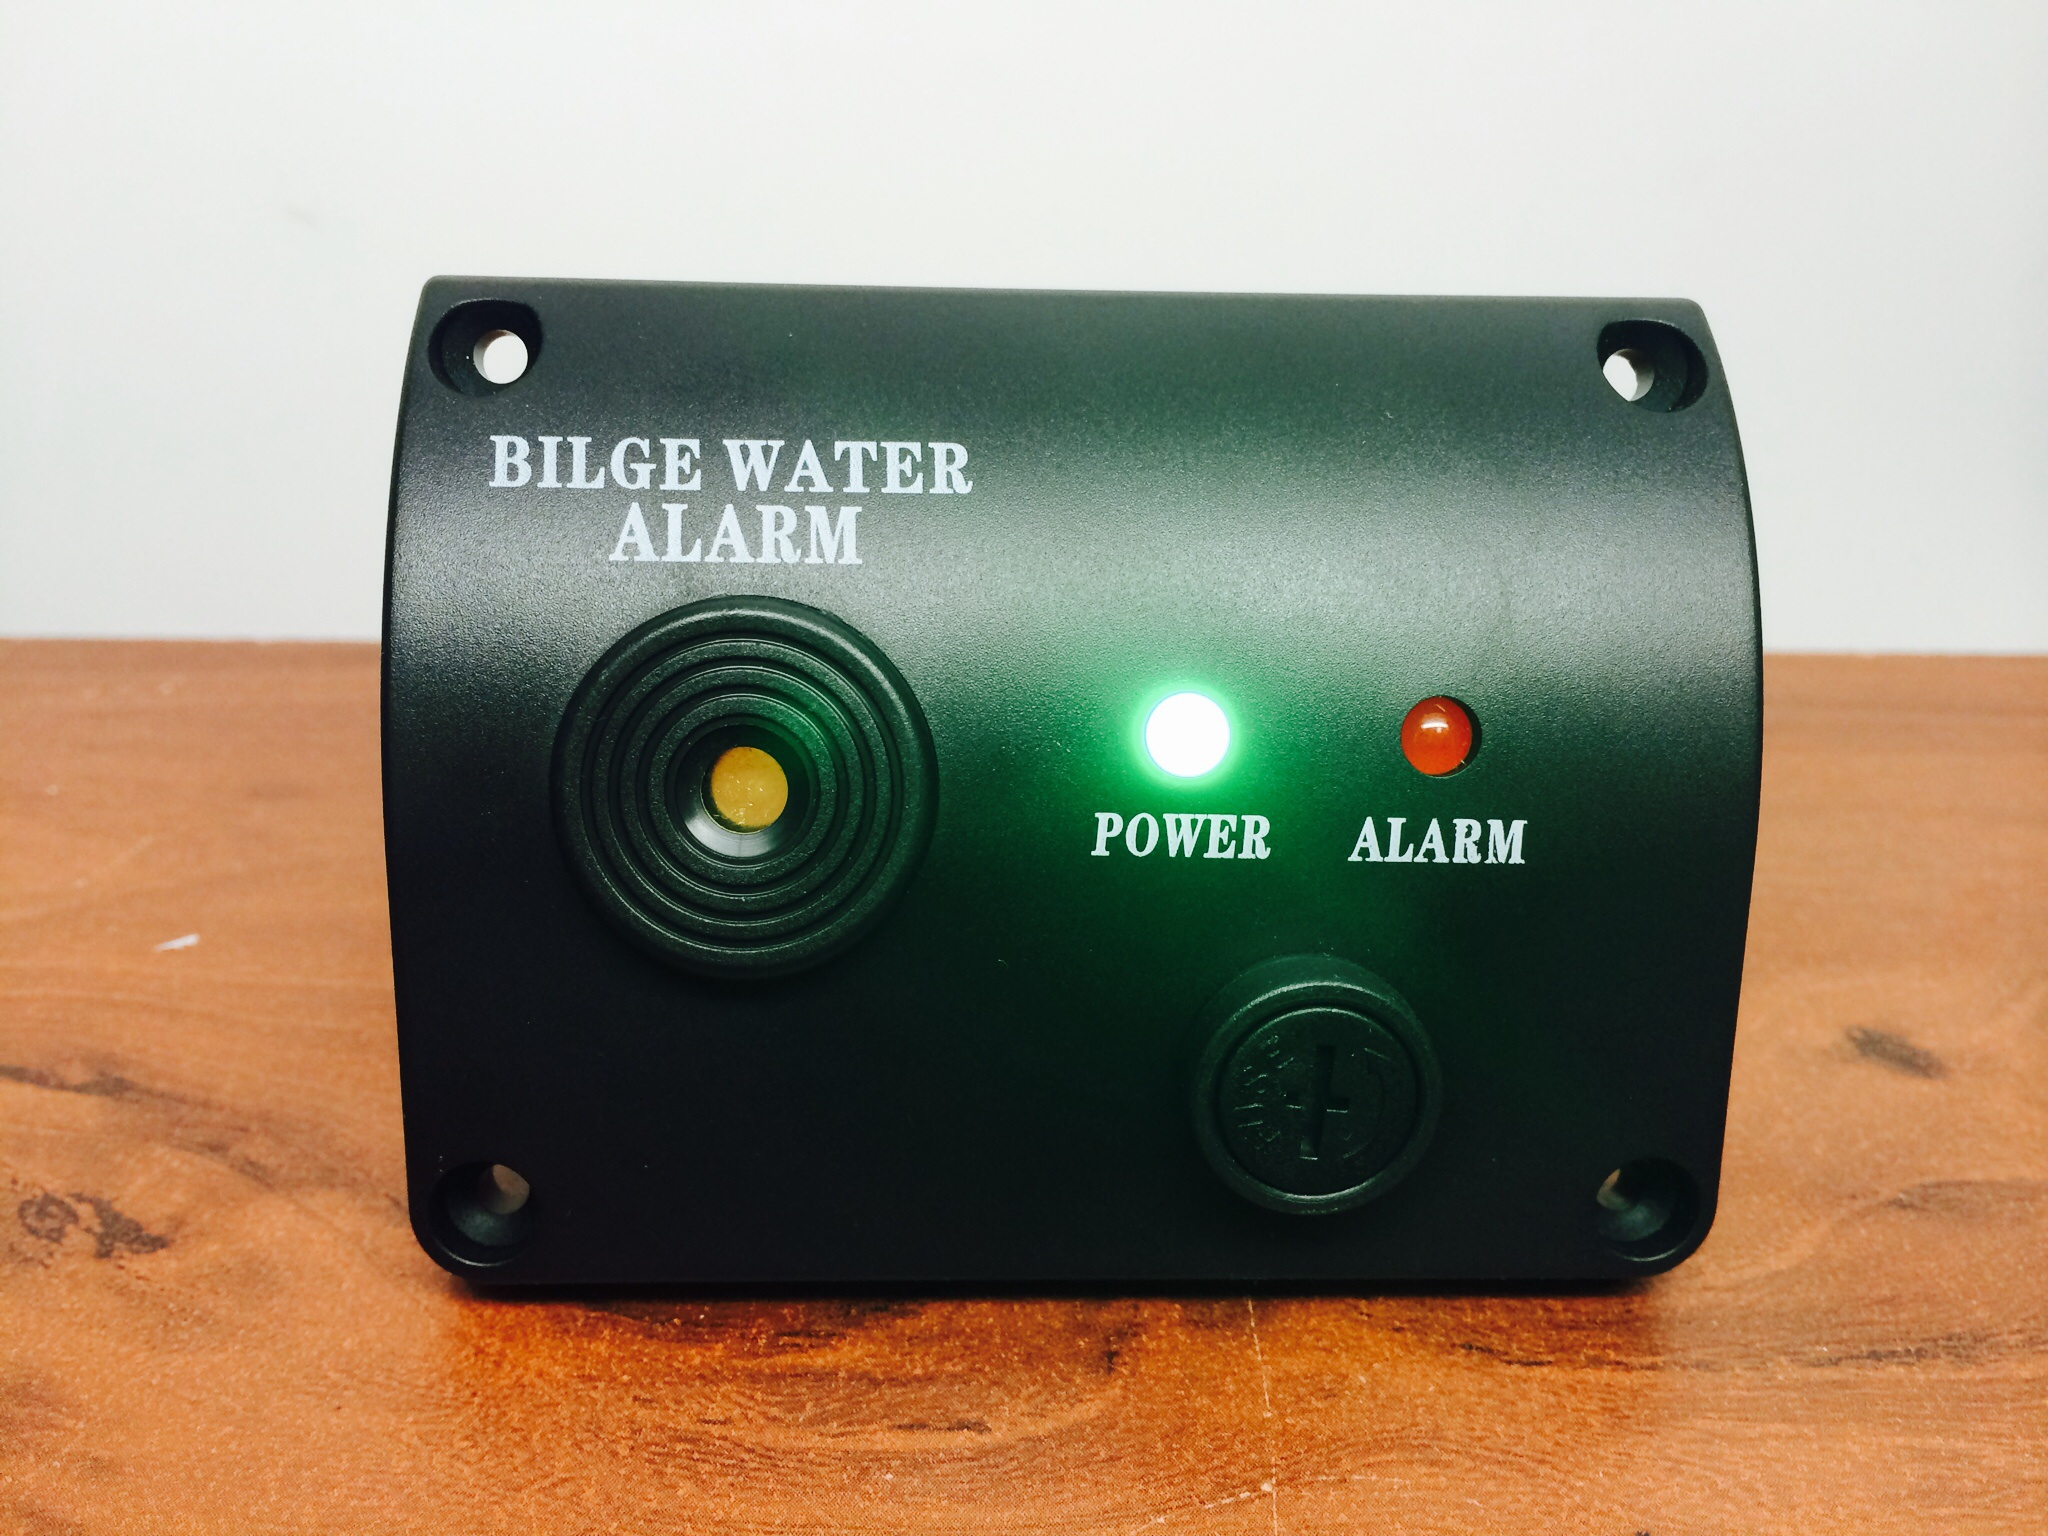 MARINE BOAT BILGE WATER ALARM 12VDC LED INDICATOR MADE OF BLACK